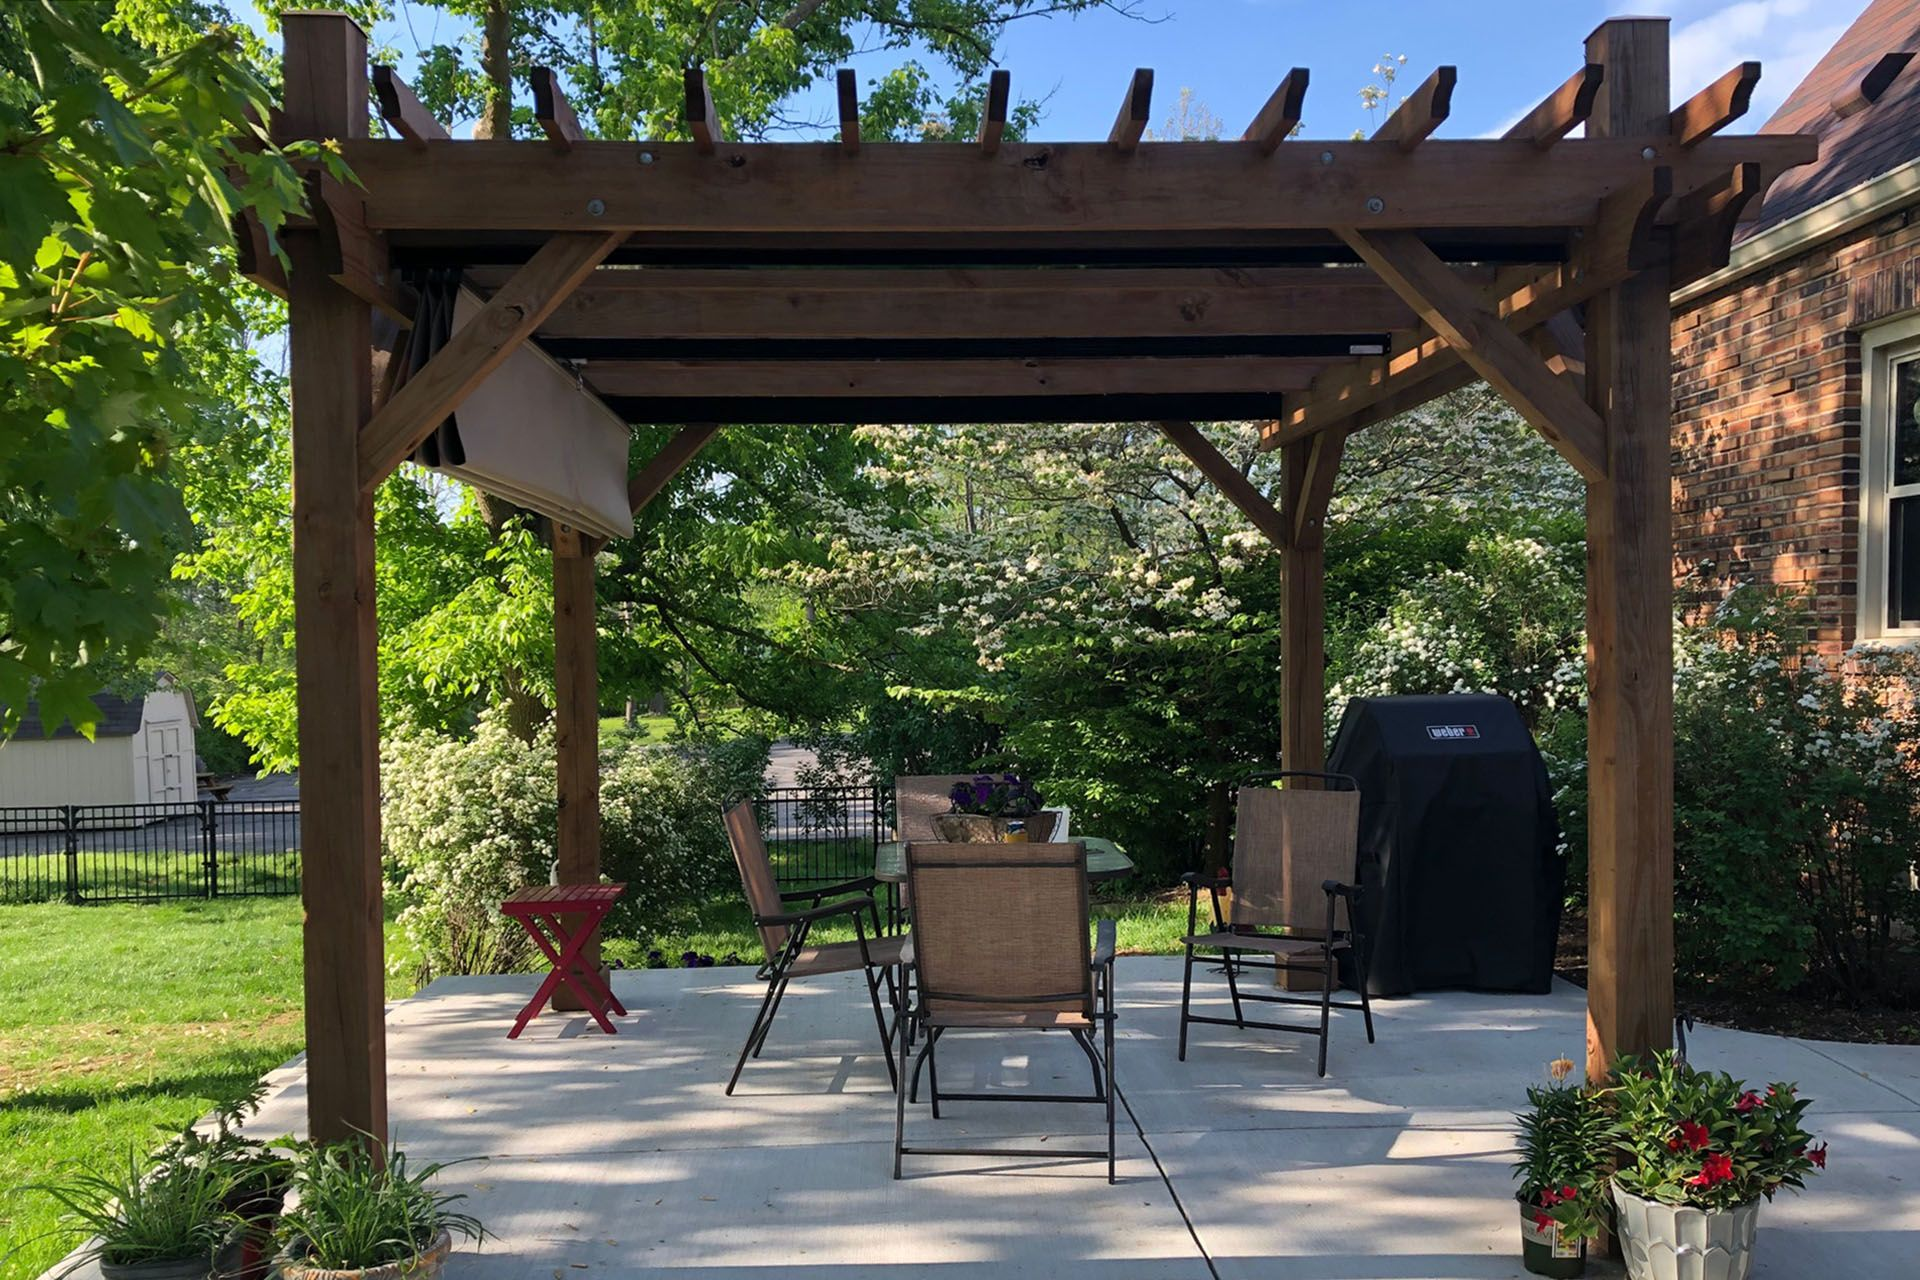 Shadefx S Patented Single Track System Stabilizers And End Caps Are Also Colored Black To Visually Complement The Str Retractable Shade Pergola Pergola Plans